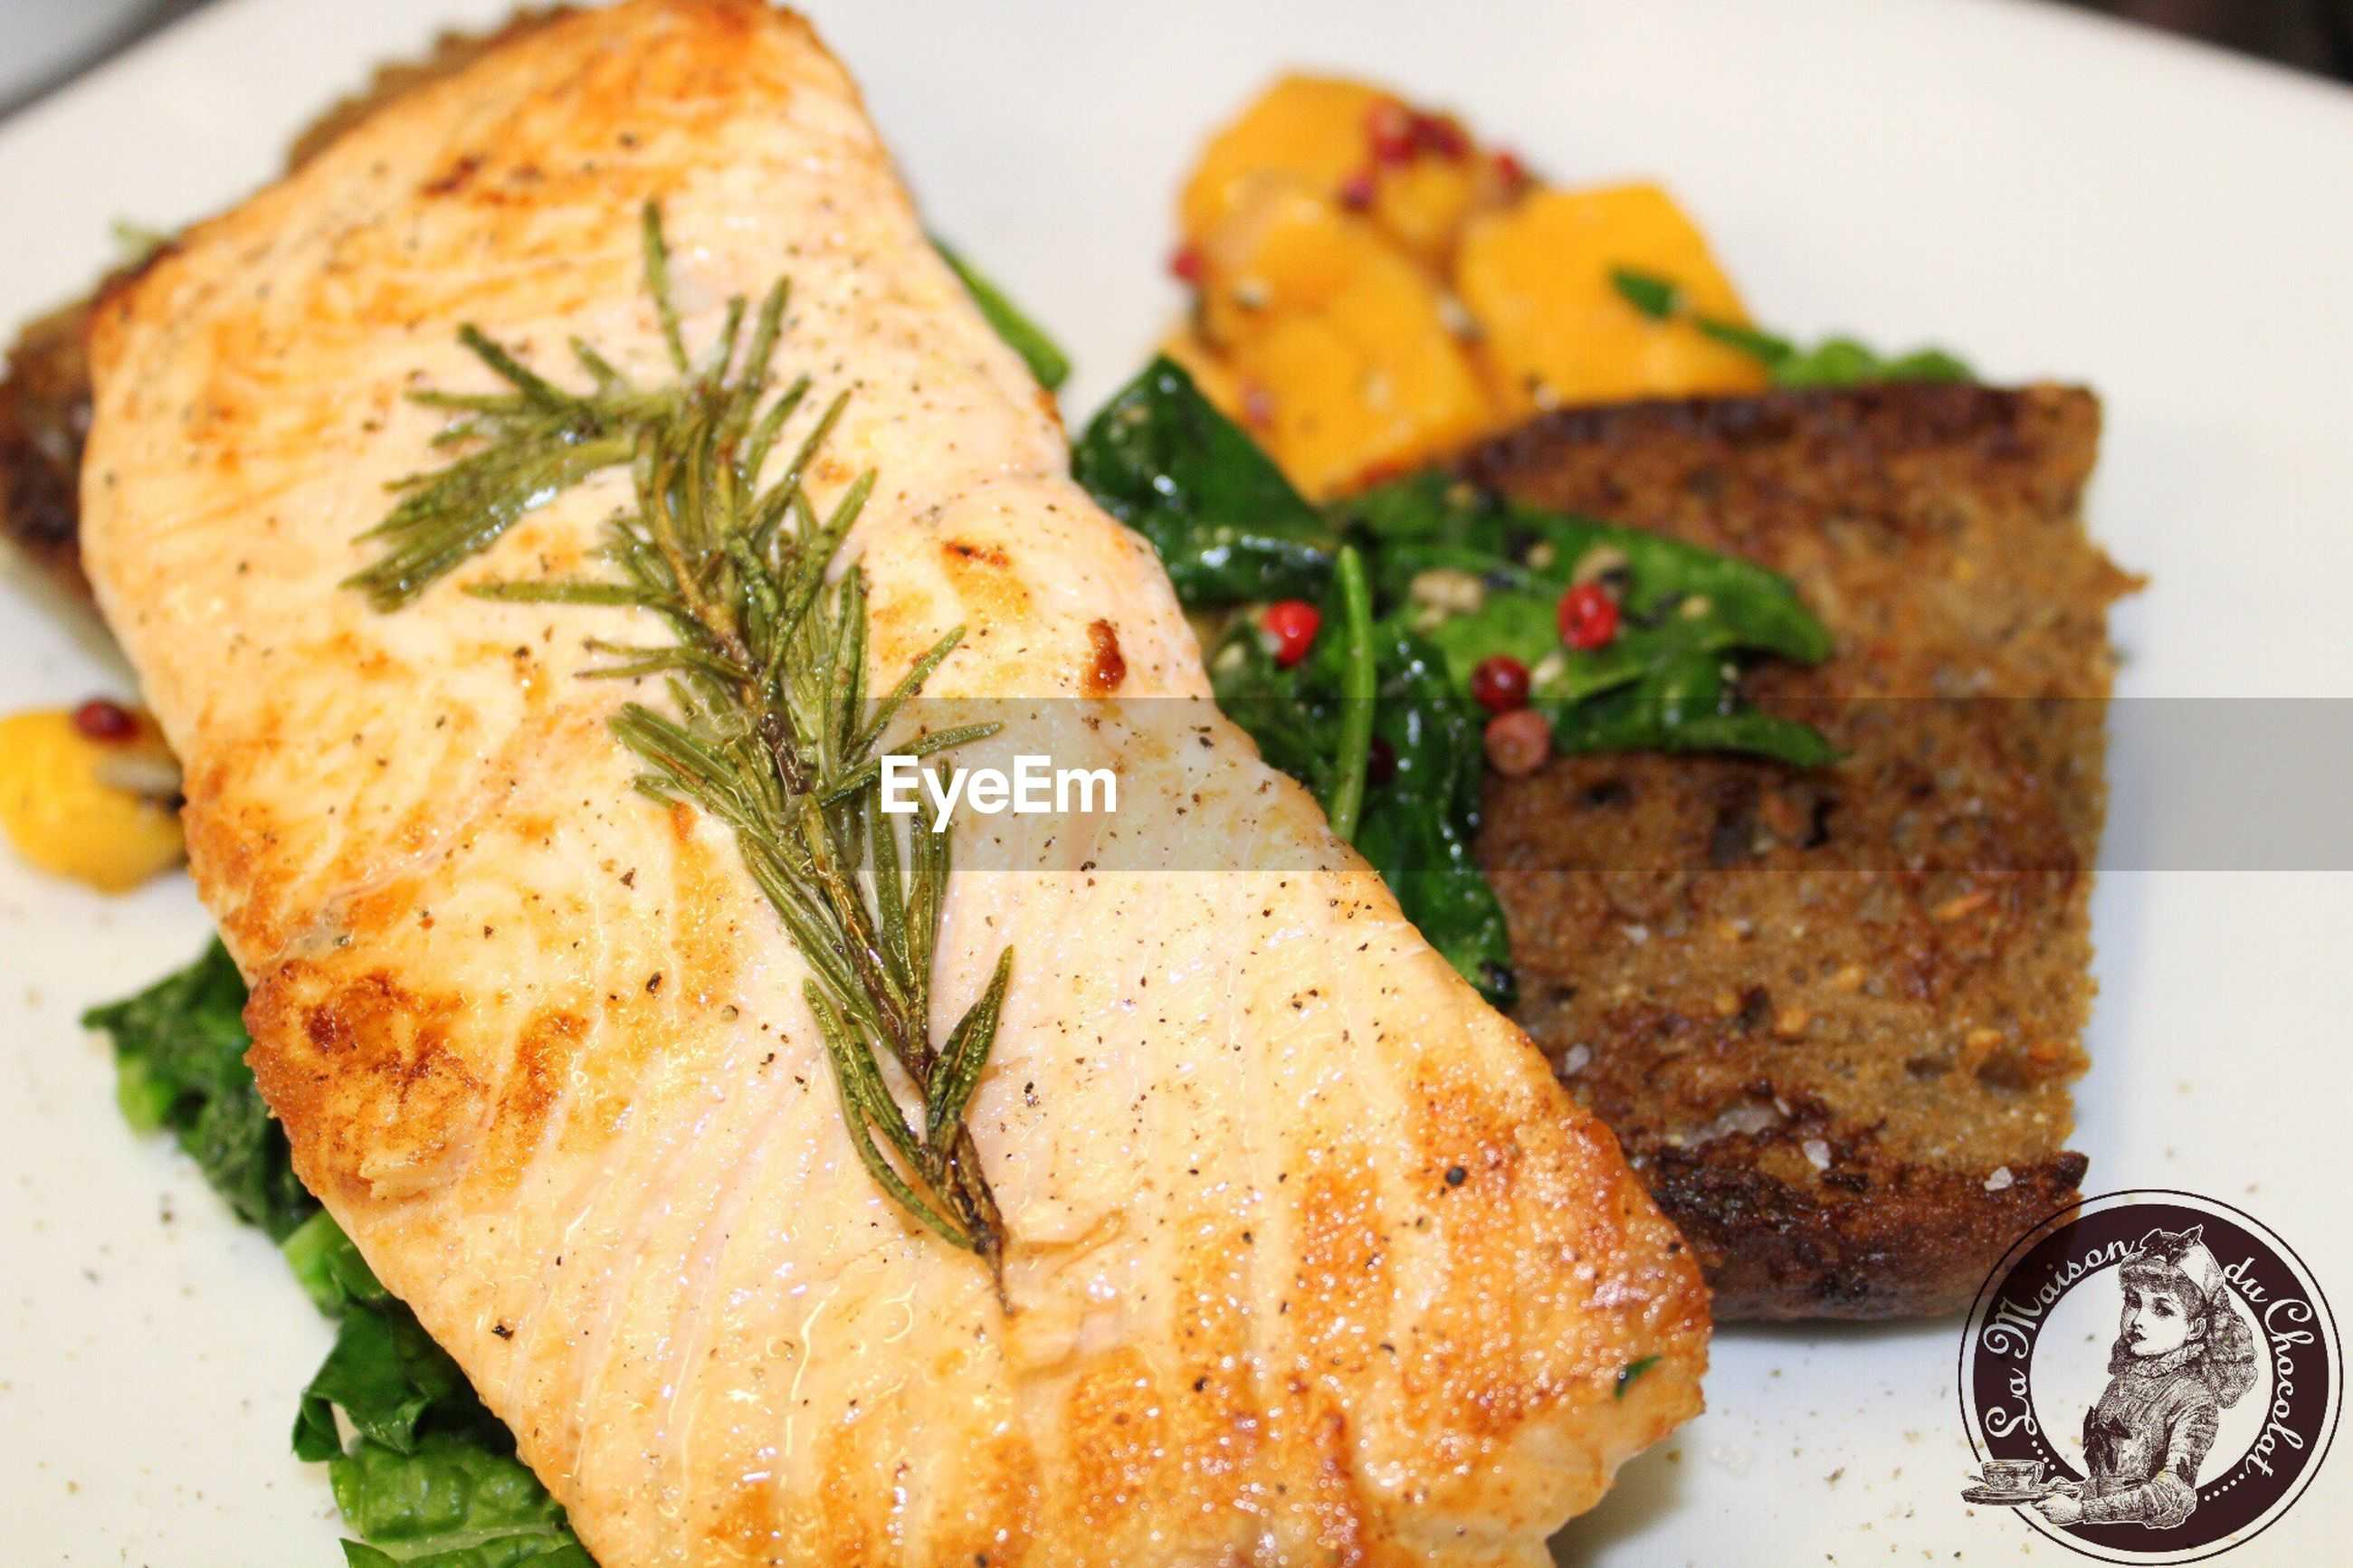 ready-to-eat, food and drink, food, healthy eating, indoors, close-up, freshness, plate, serving size, table, no people, garnish